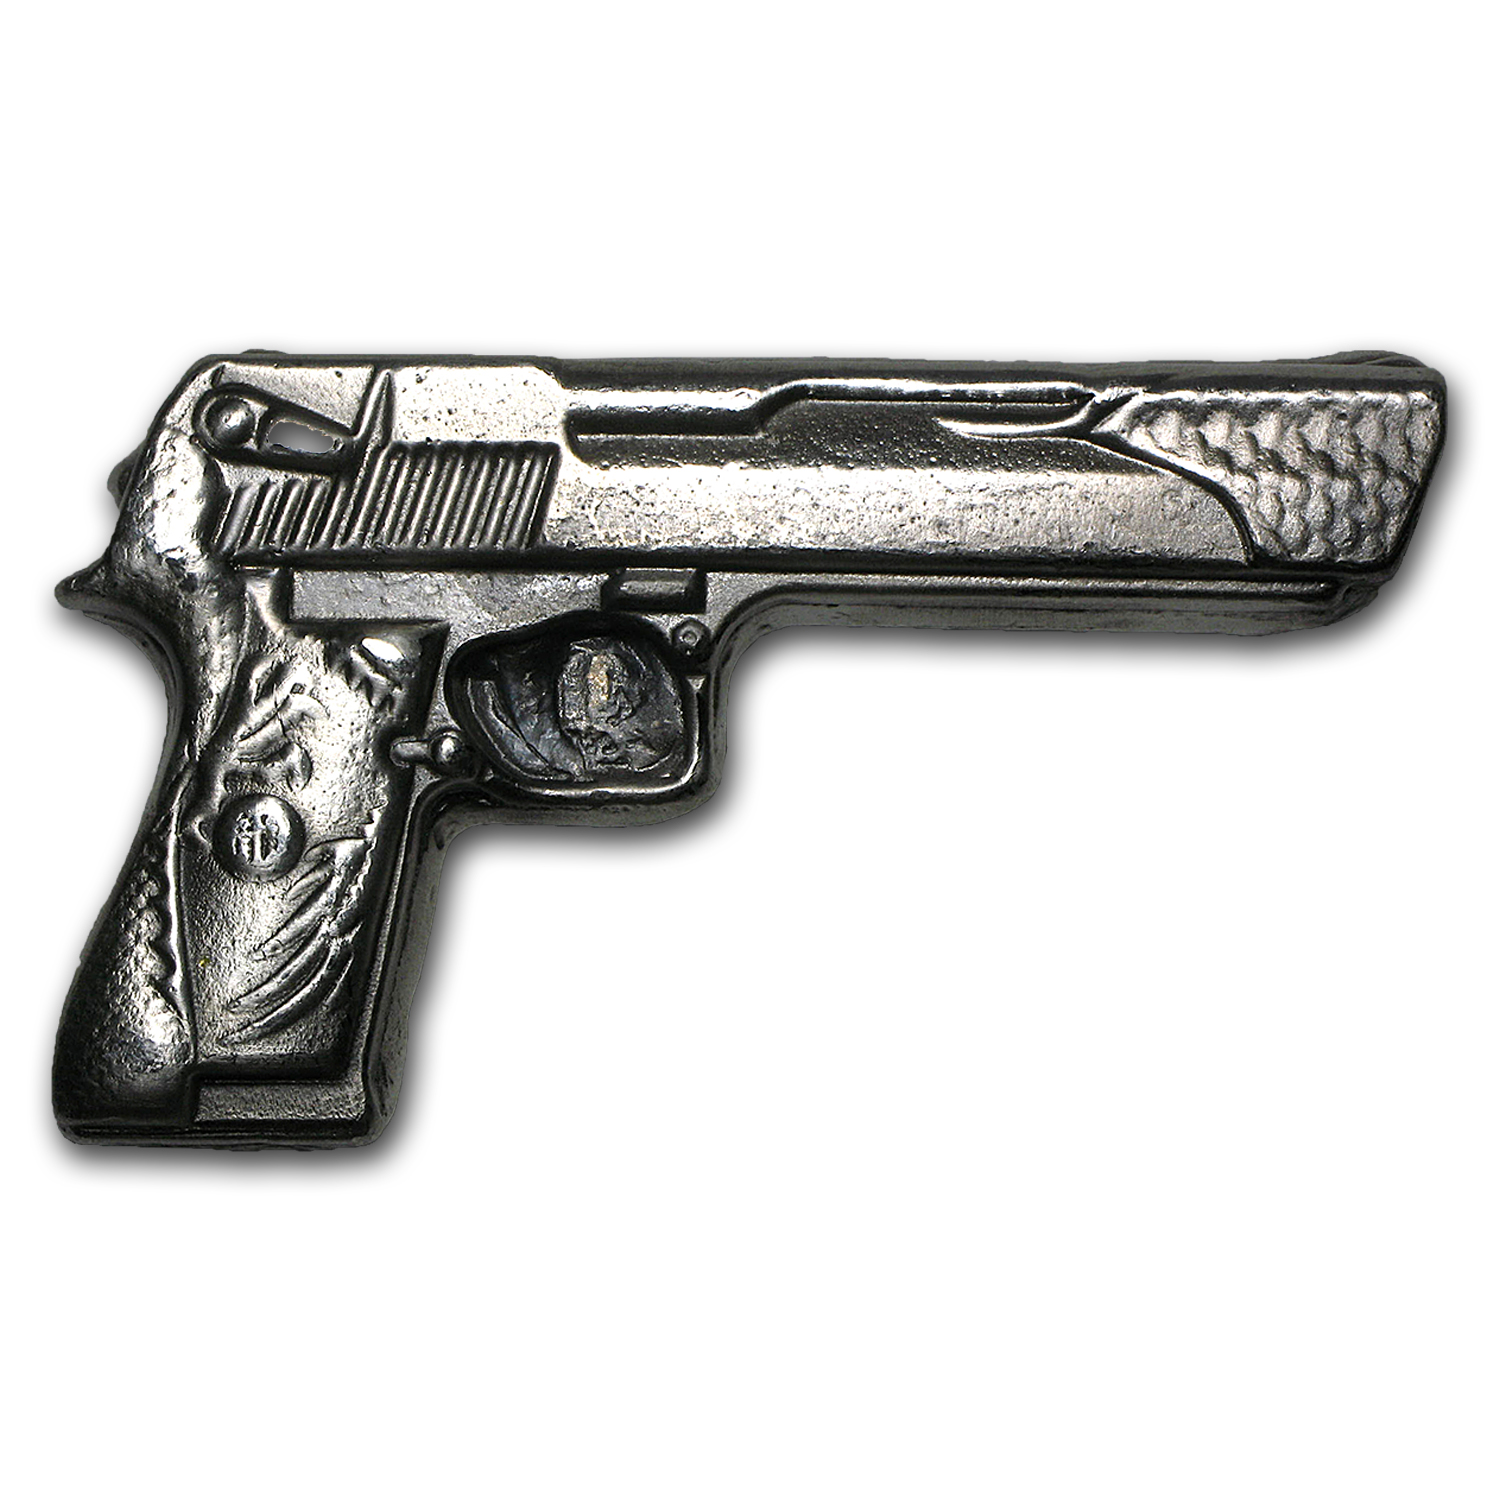 5 oz Silver Bar - Desert Eagle Gun